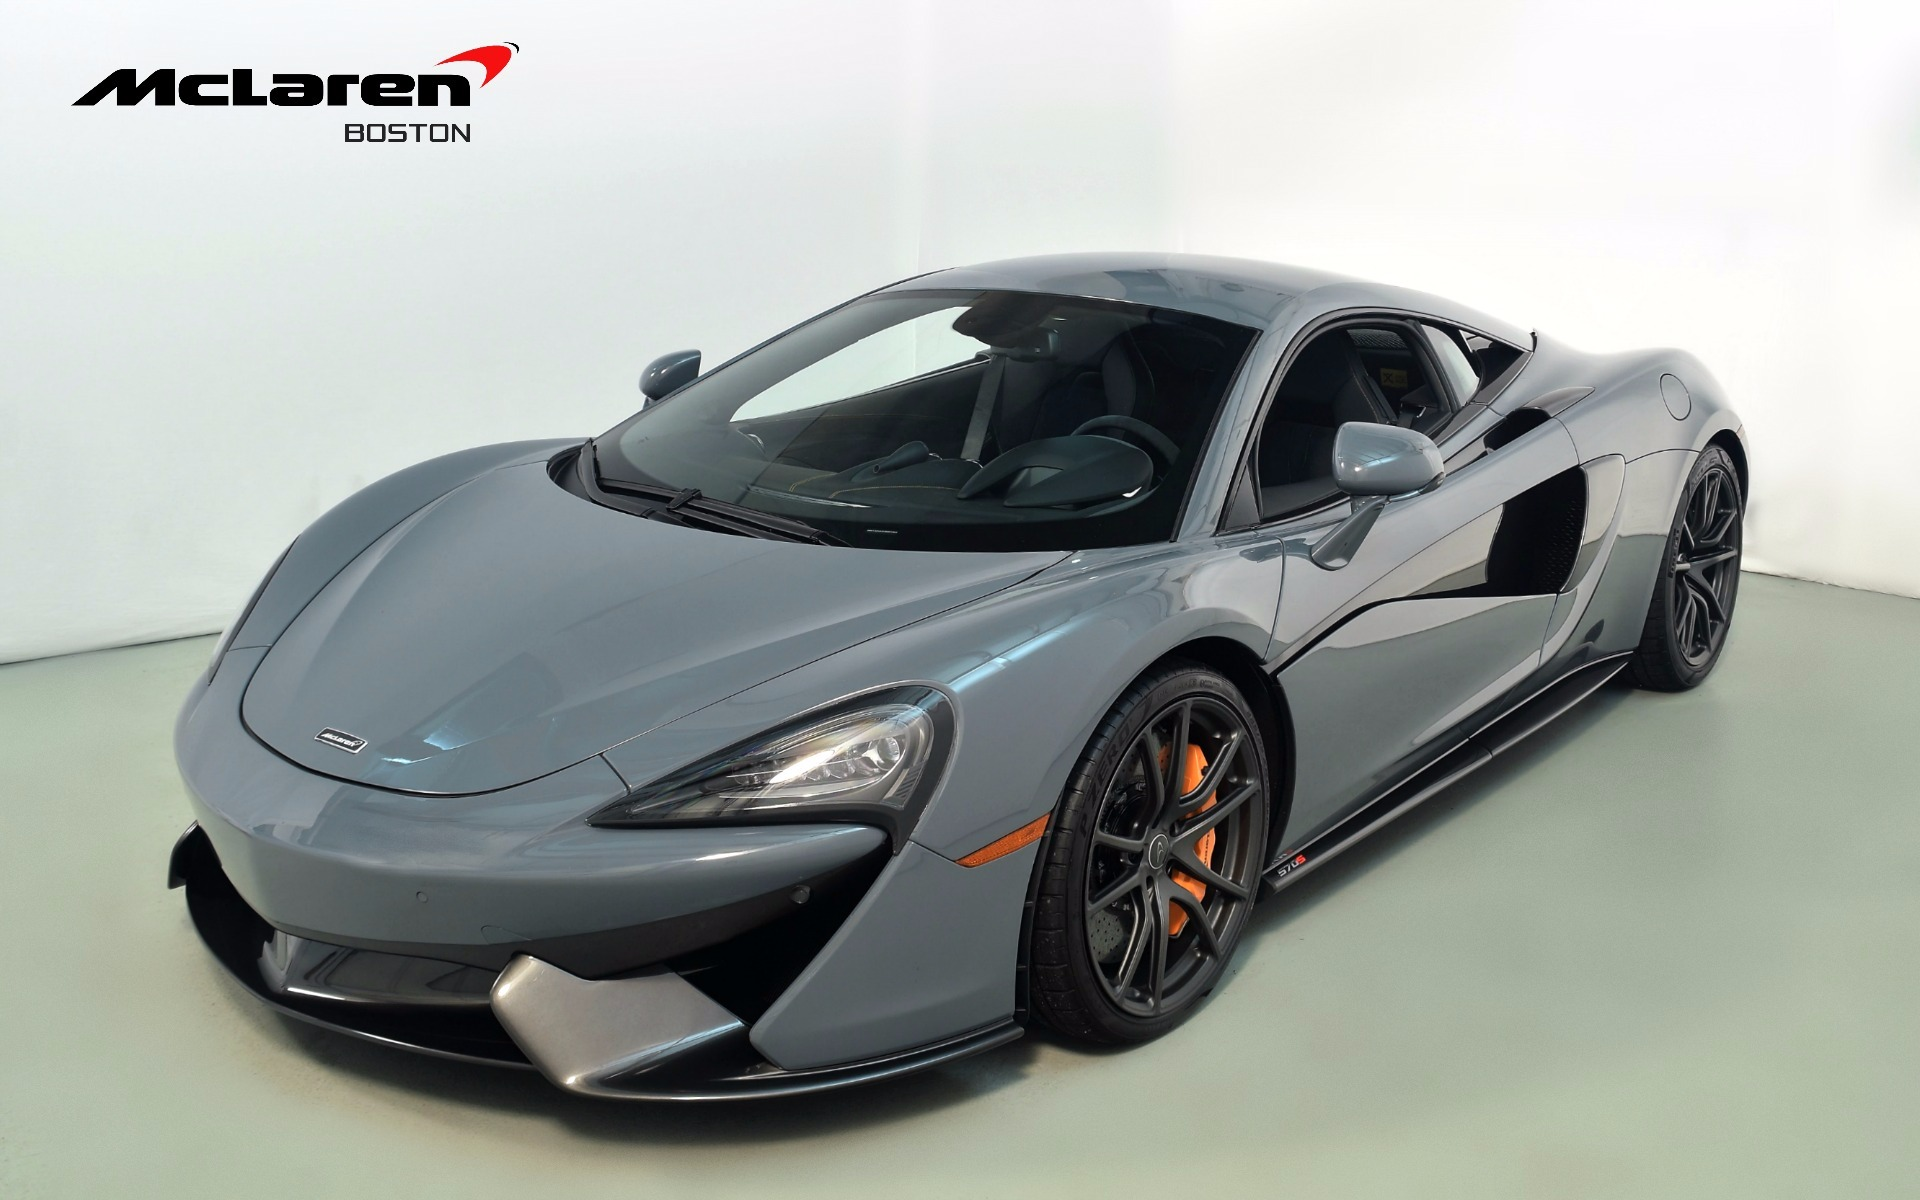 Lease To Own Car >> 2017 MCLAREN 570S For Sale in Norwell, MA 001805 | Mclaren Boston